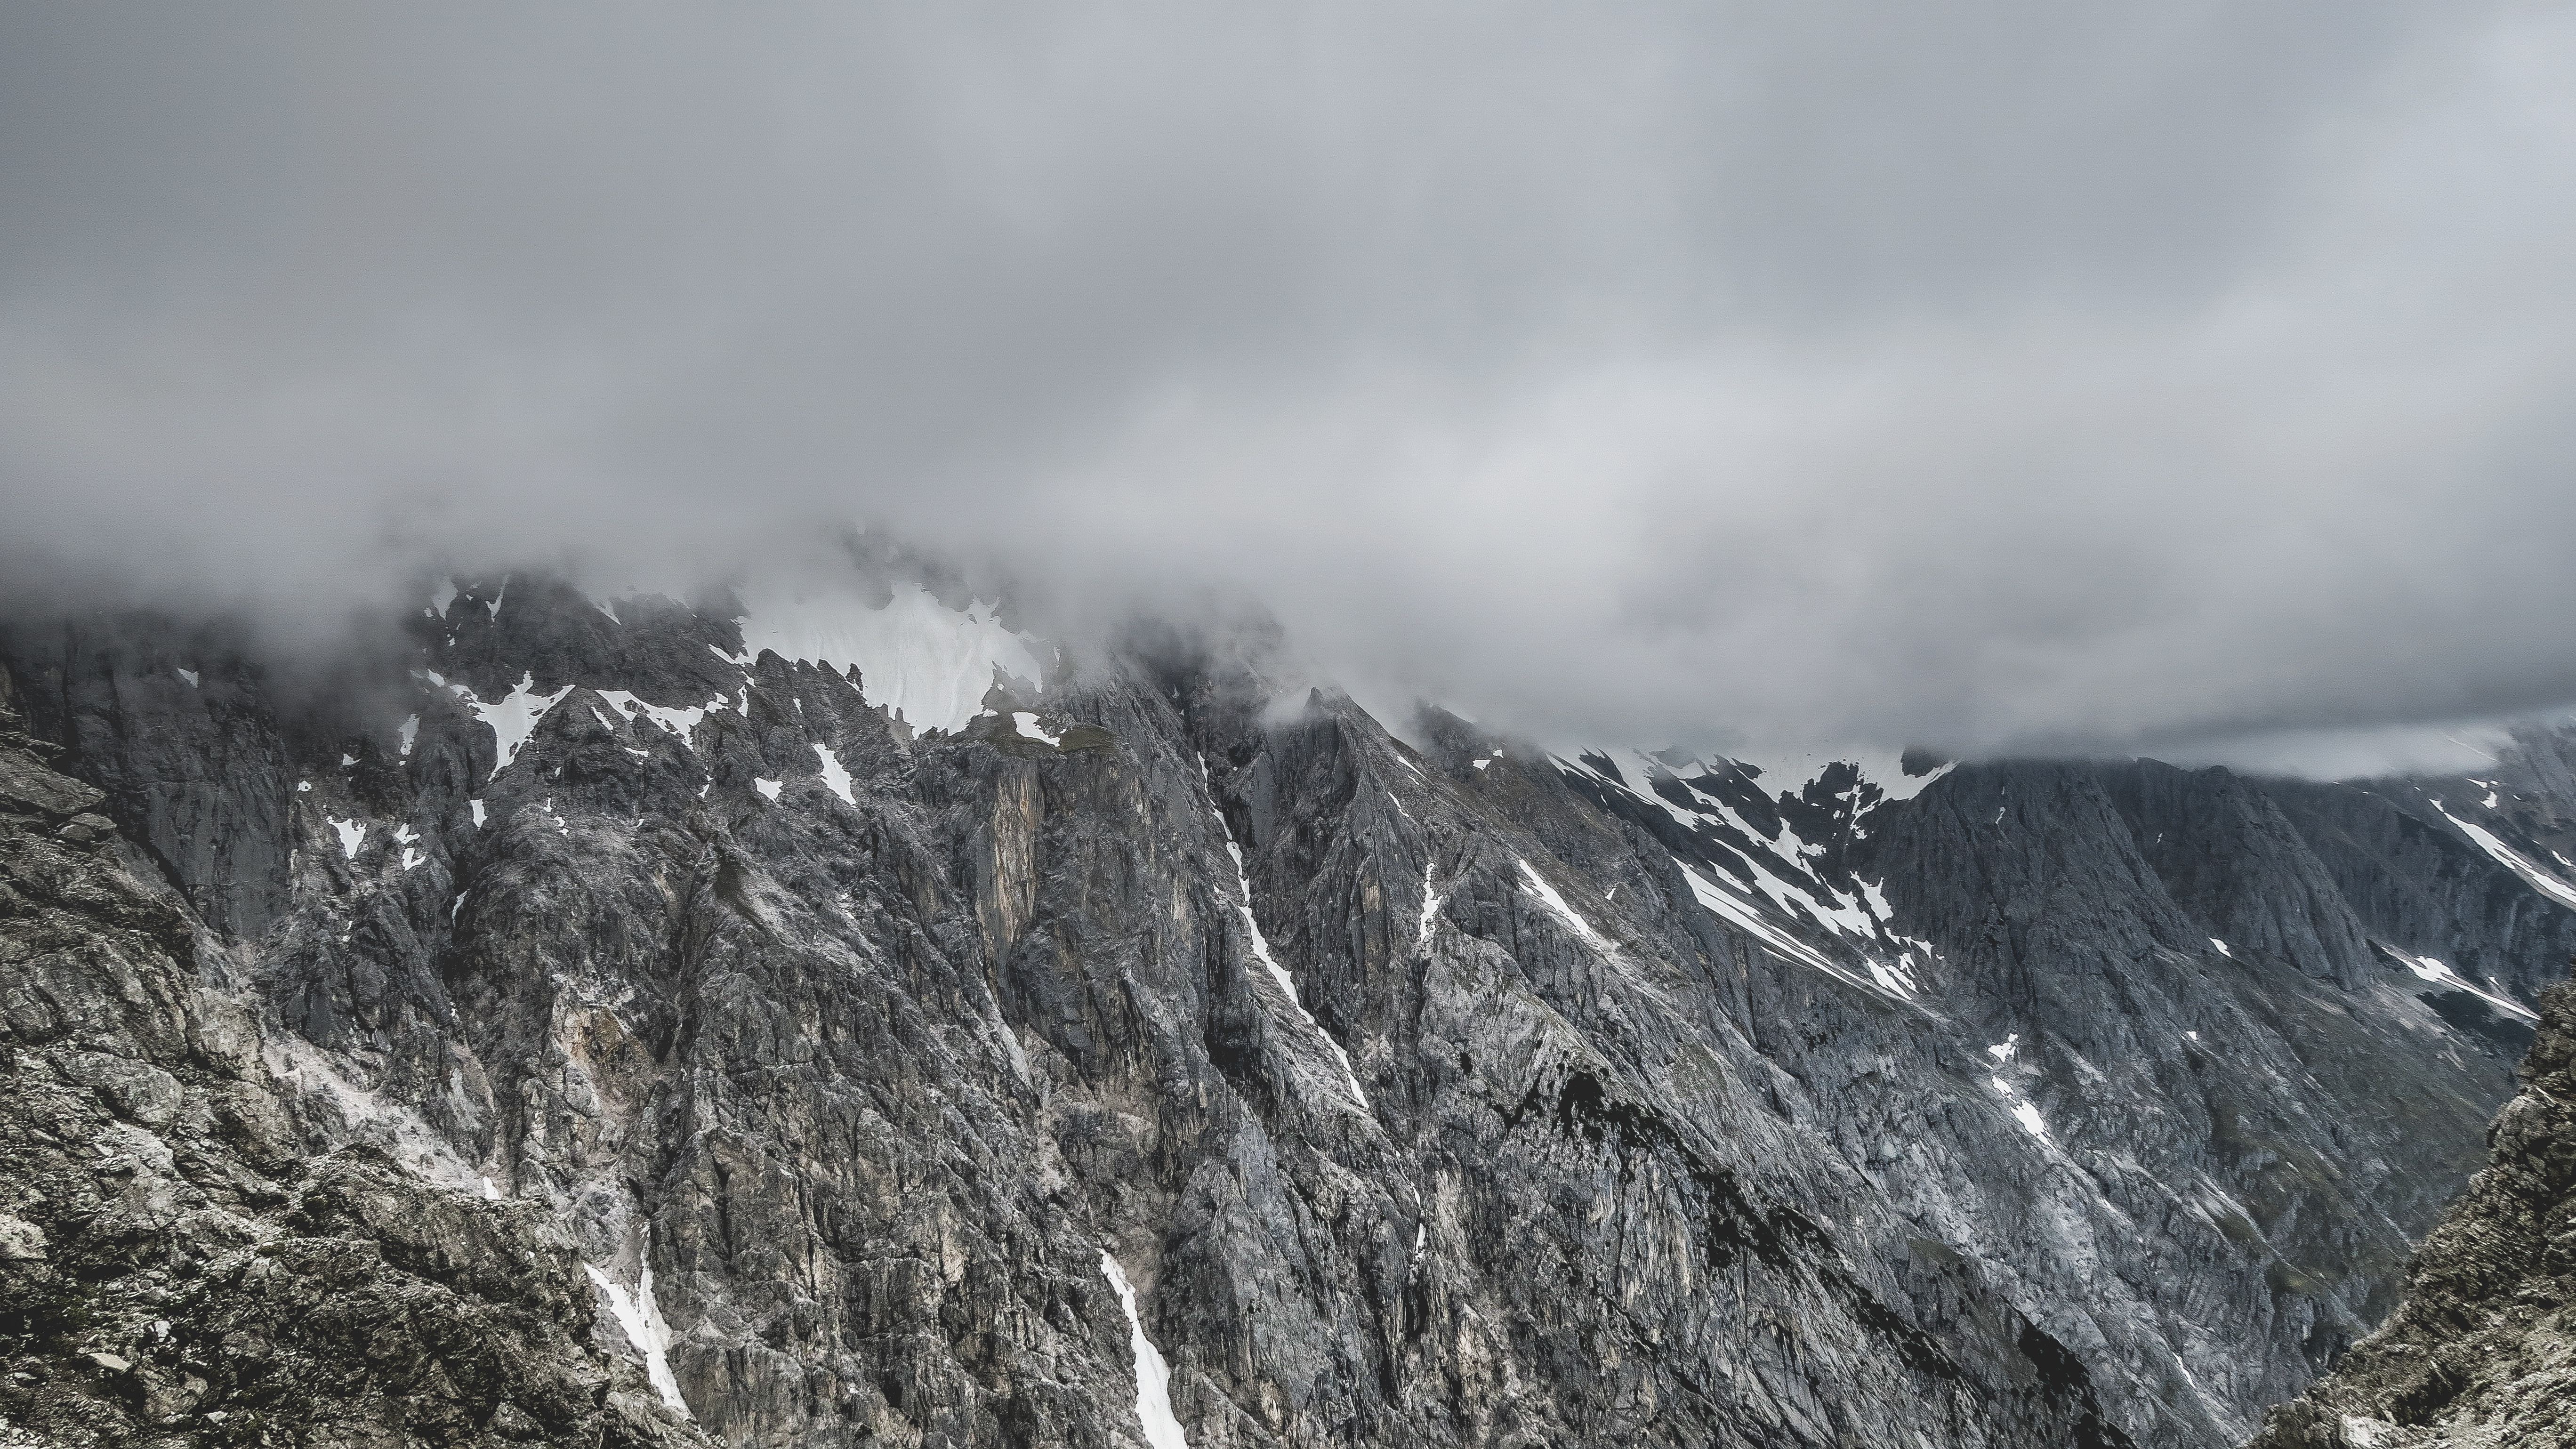 Fog covers the mountain tops of Wankspitze in Tyrol, Austria